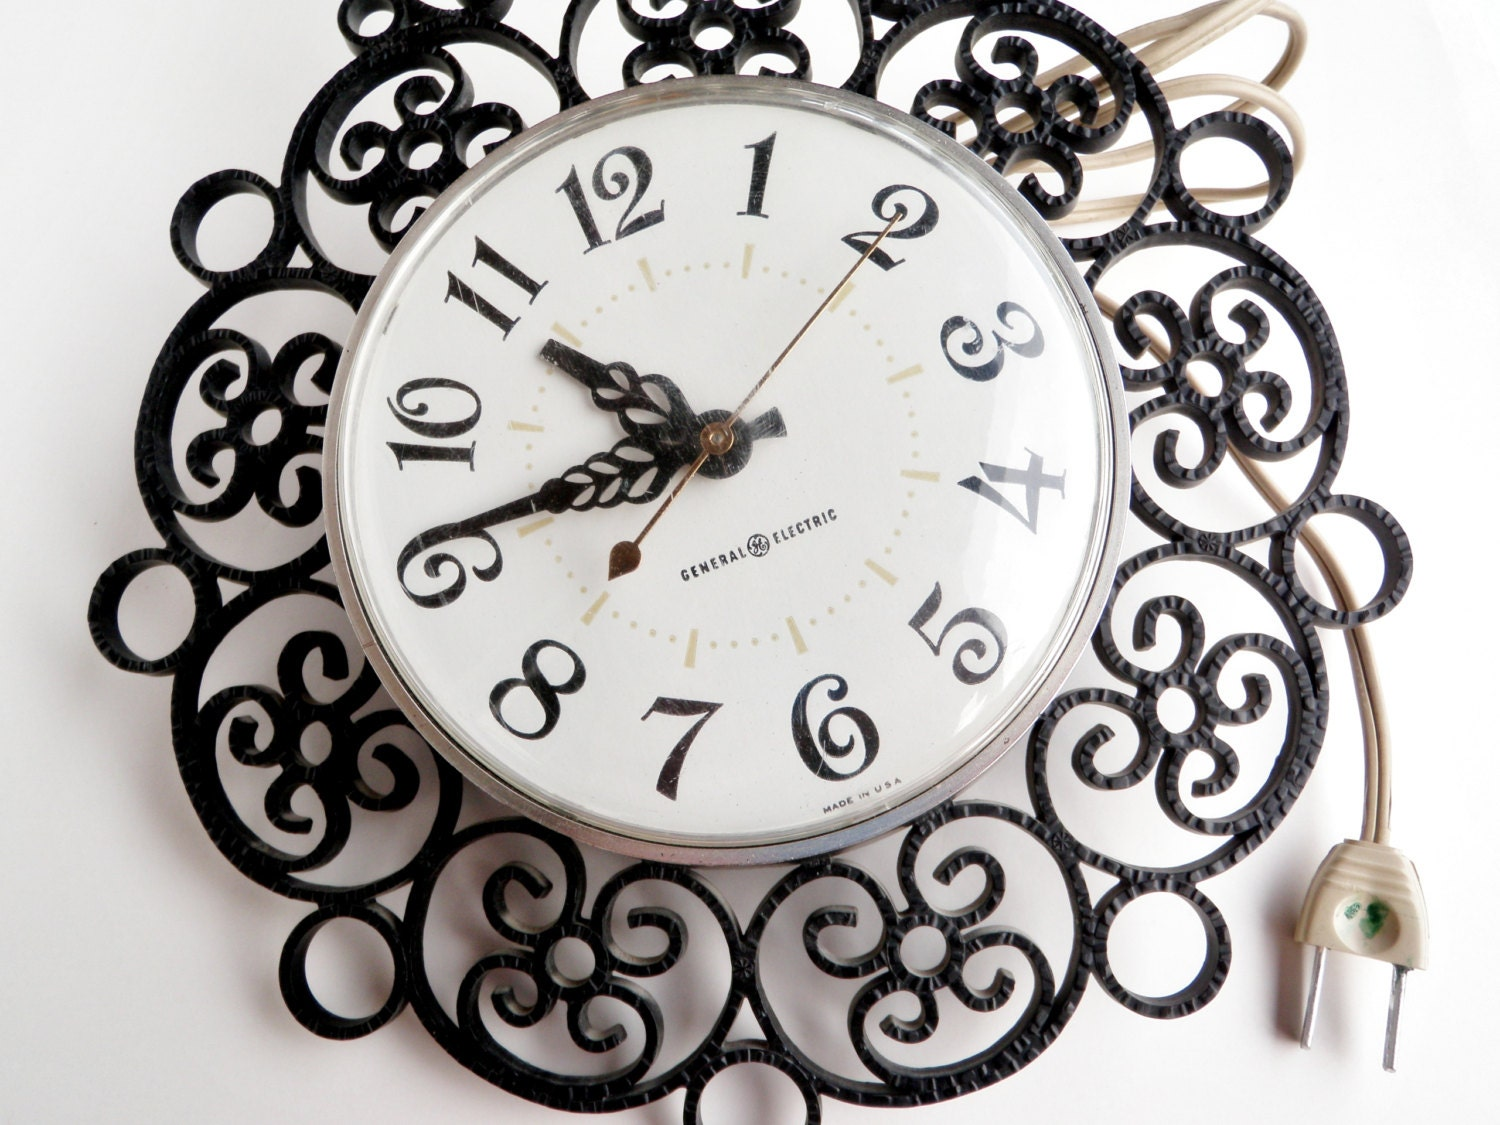 Vintage Electric Wall Clock Black Scroll Work Retro GE USA